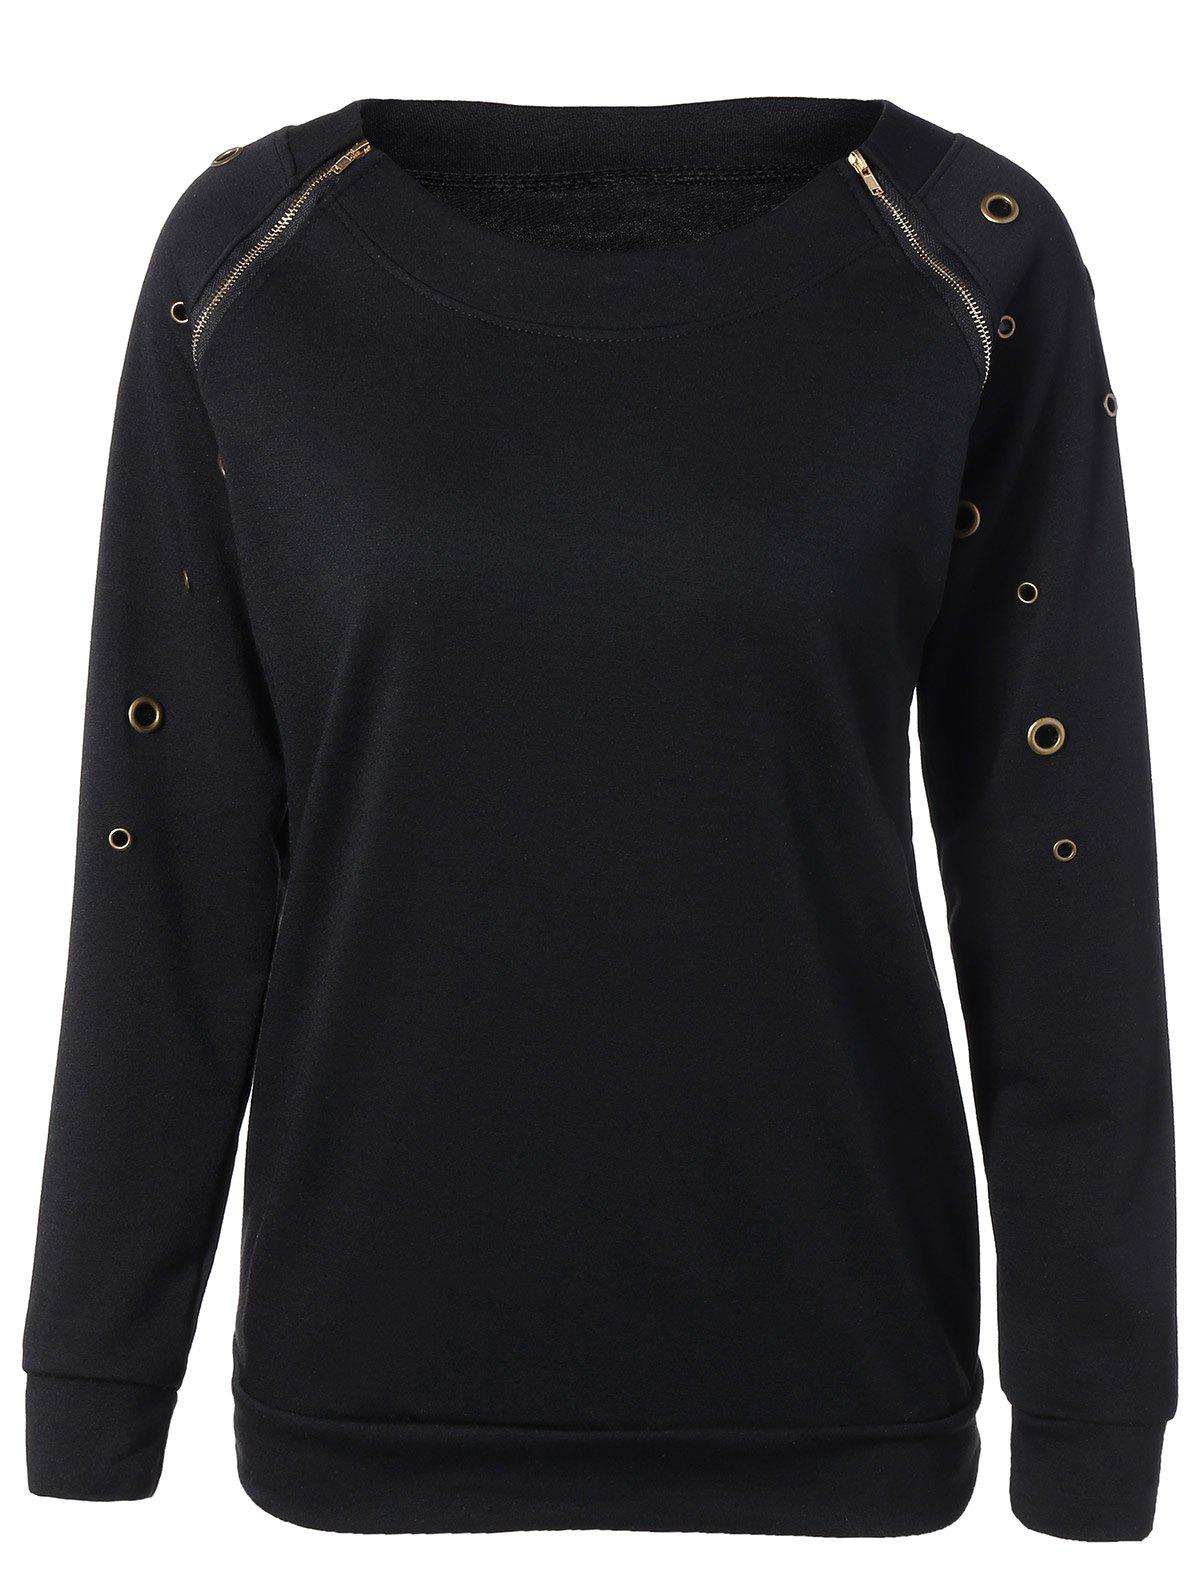 Zippered Crew Neck Pullover Sweatshirt - BLACK M